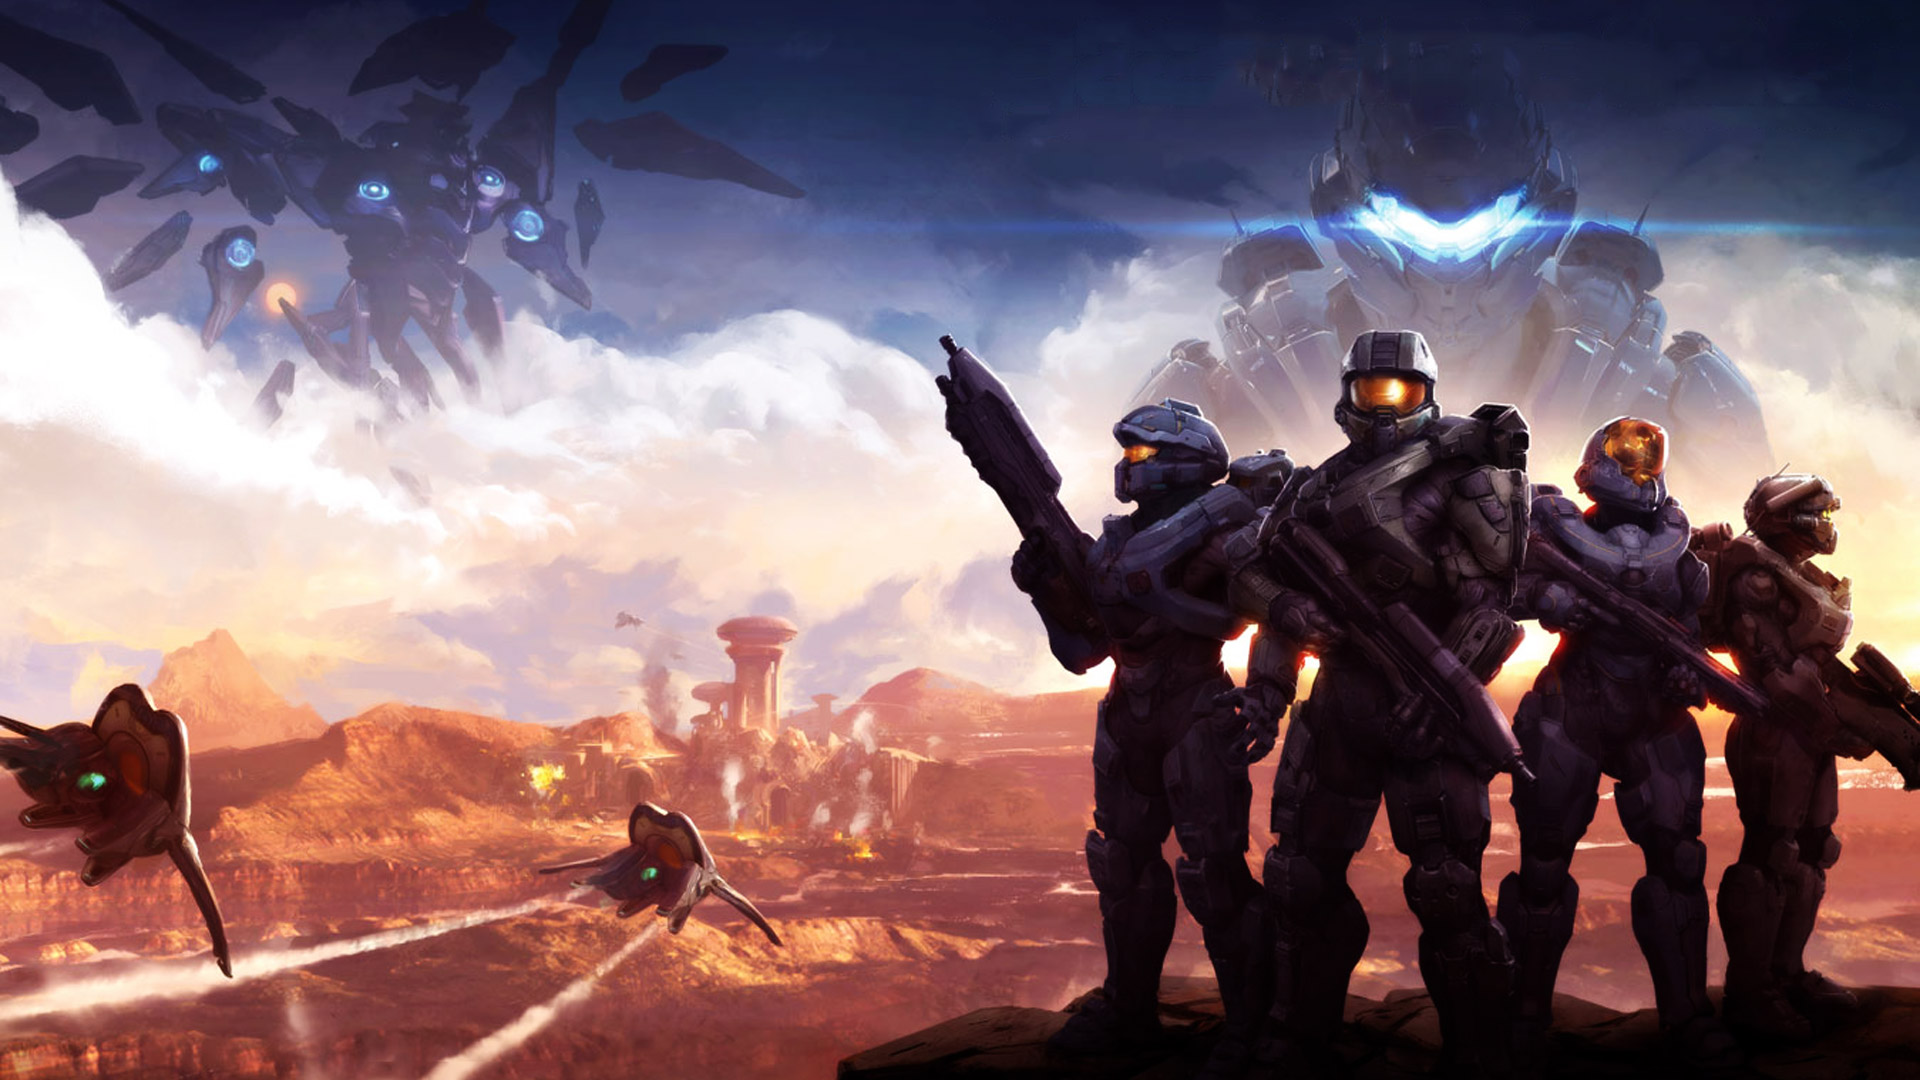 Halo 5 Guardians Wallpaper in 1920x1080 1920x1080